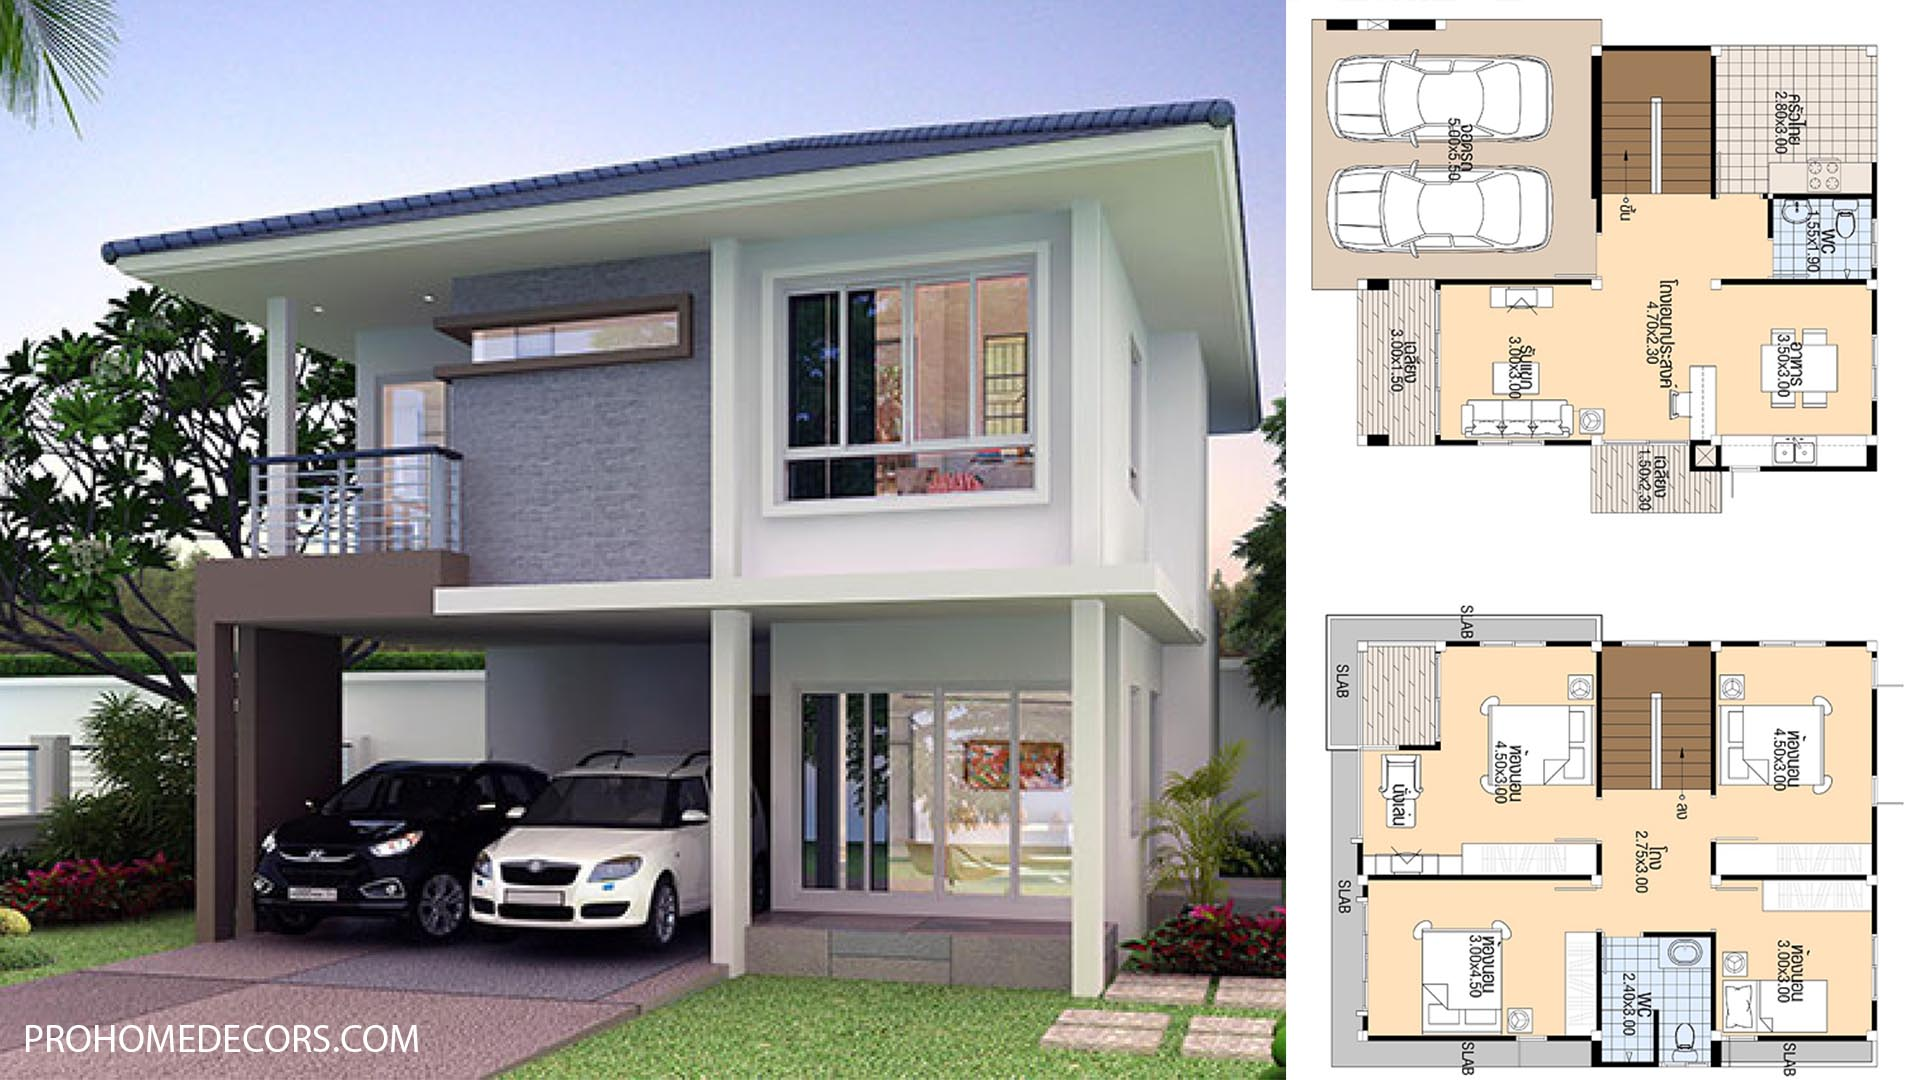 House Design Plans 8×11 with 4 bedrooms